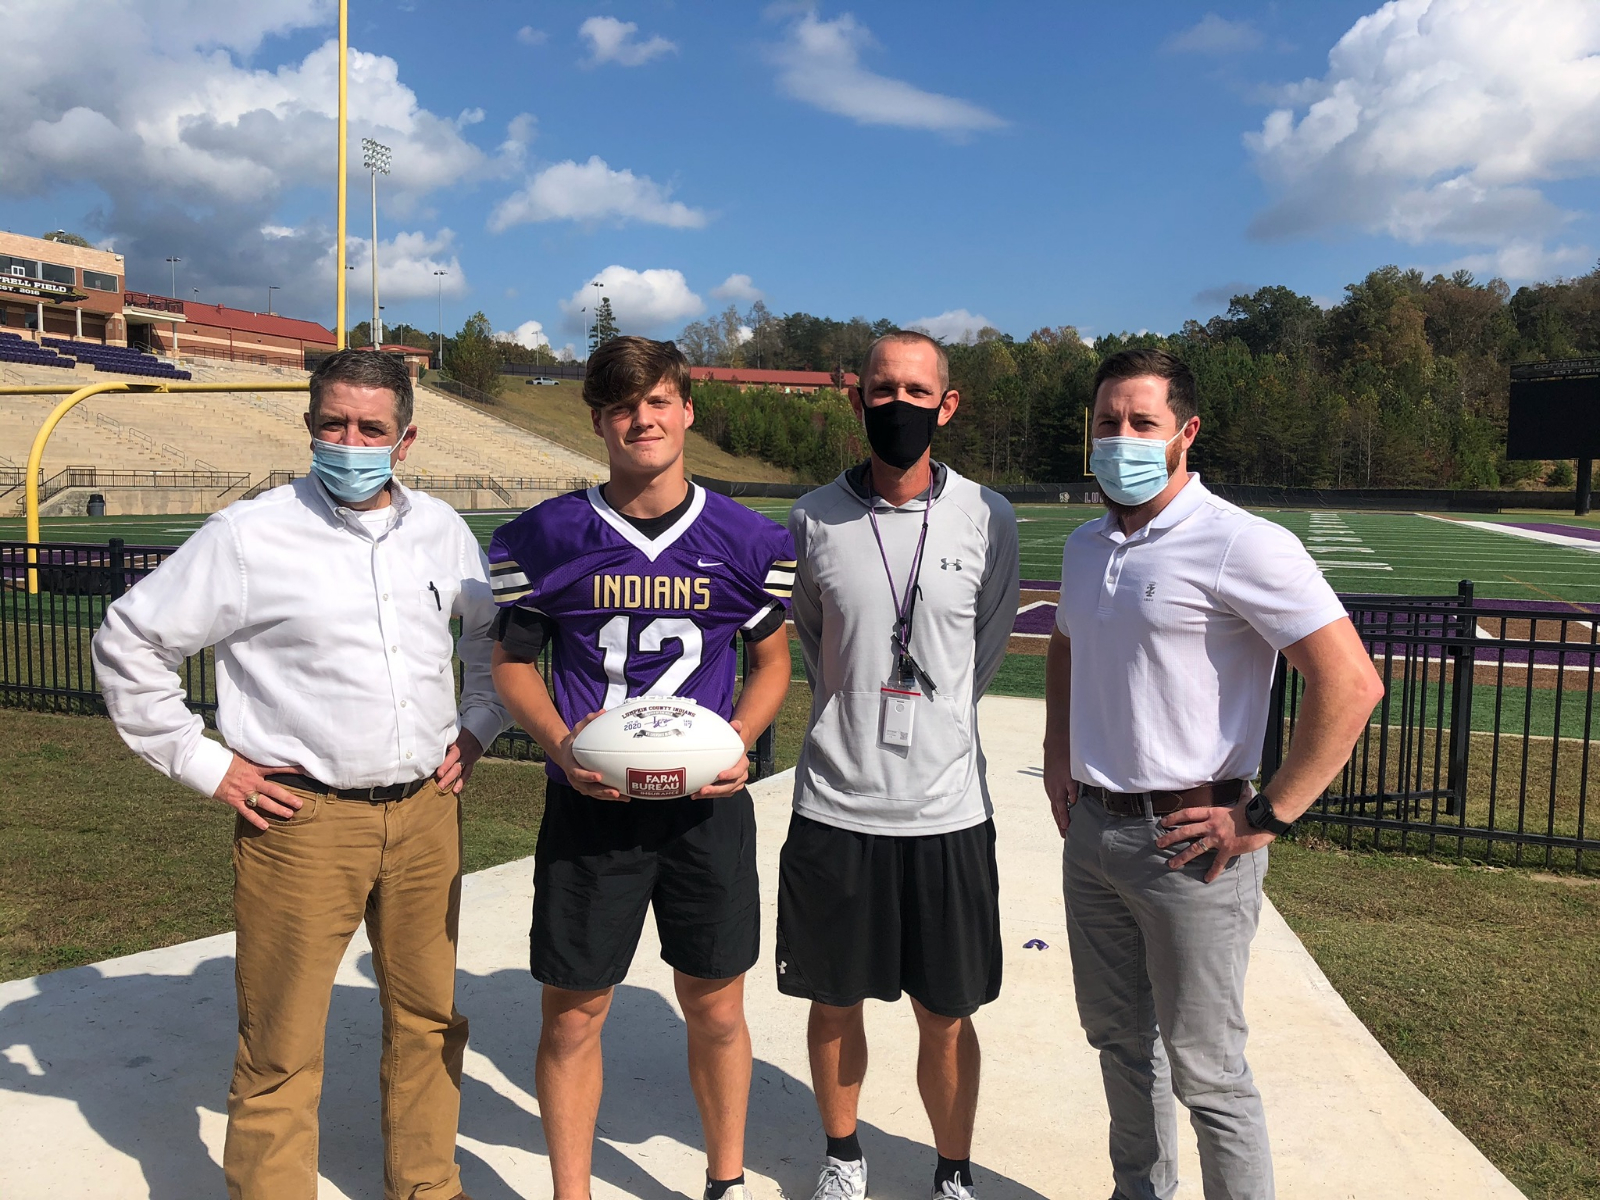 Lumpkin County Farm Bureau's Player of the Game Caleb Norrell